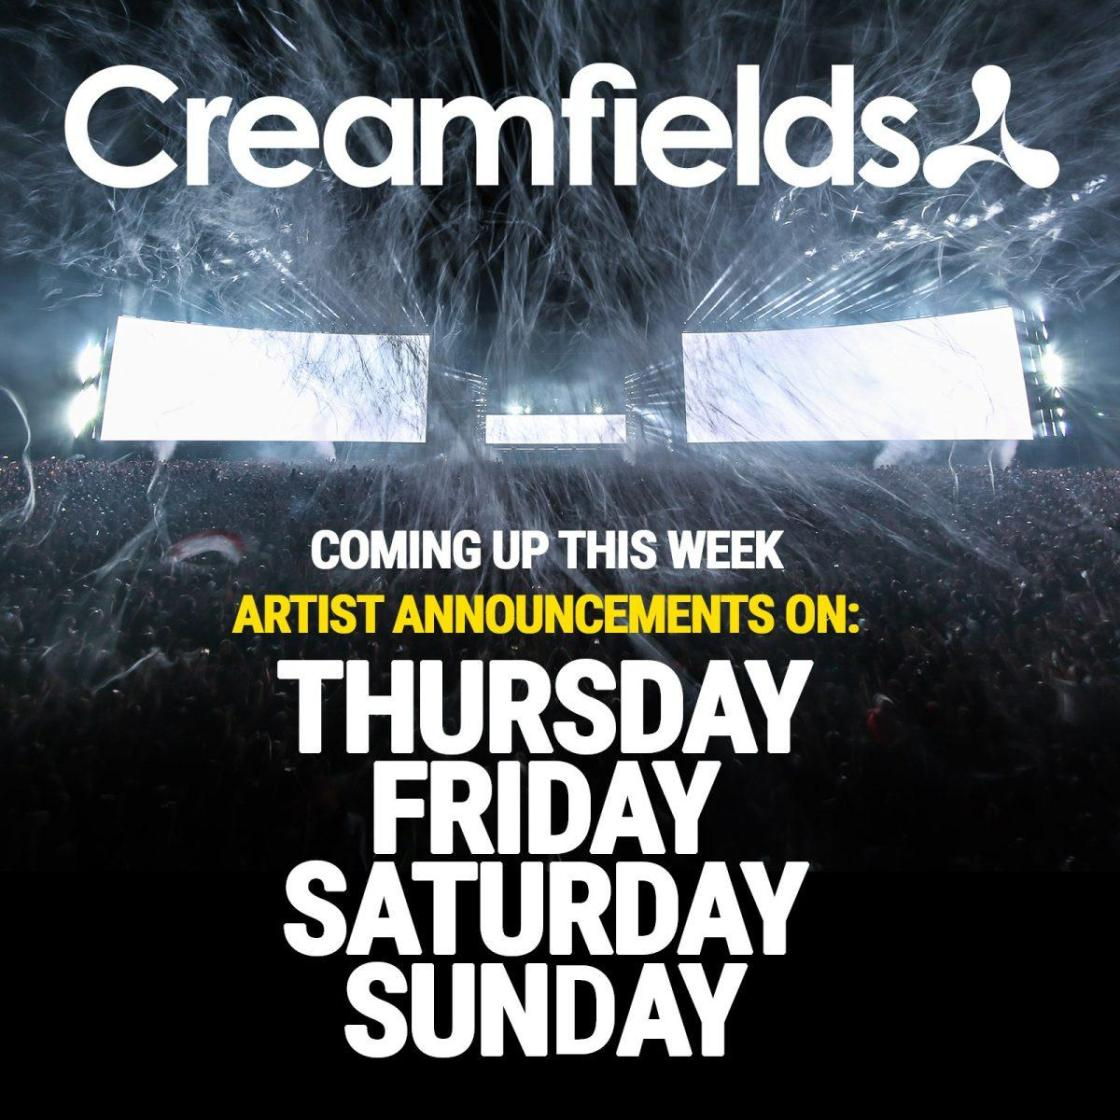 HUGE week ahead! Artist announcements coming this Thursday, Friday, Saturday &am...